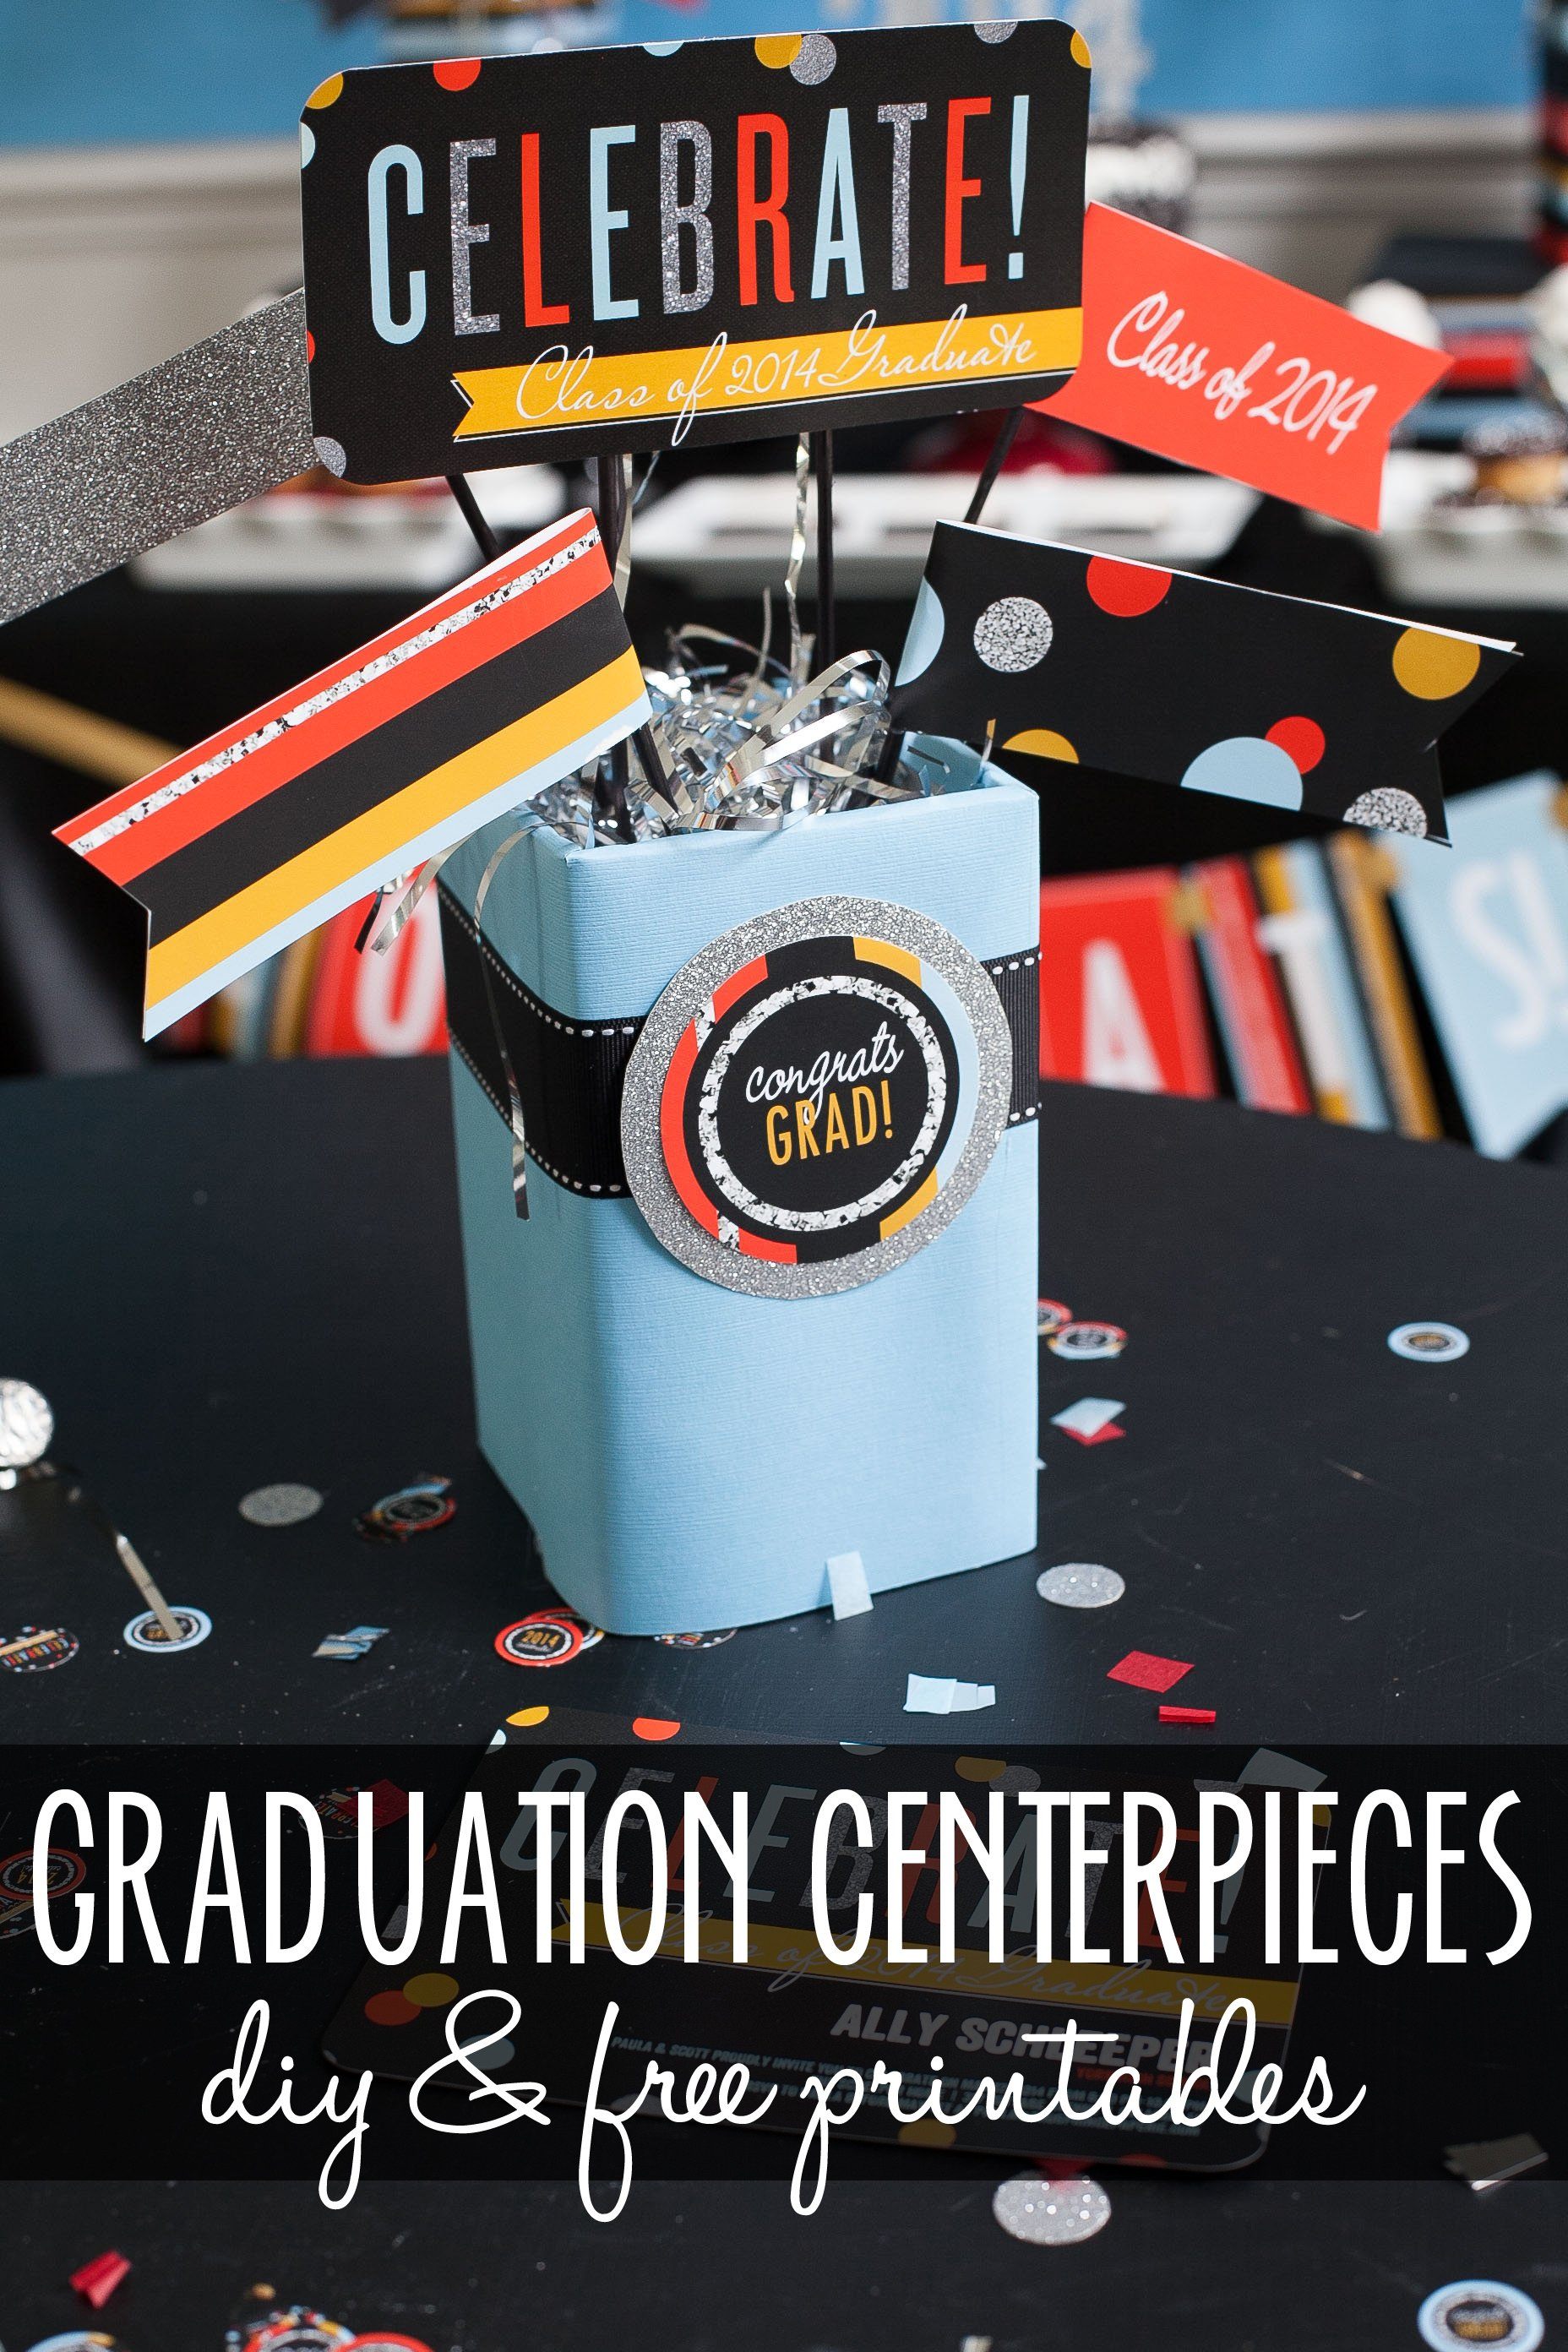 Table Decorations For Graduation Party Pictures to pin on Pinterest